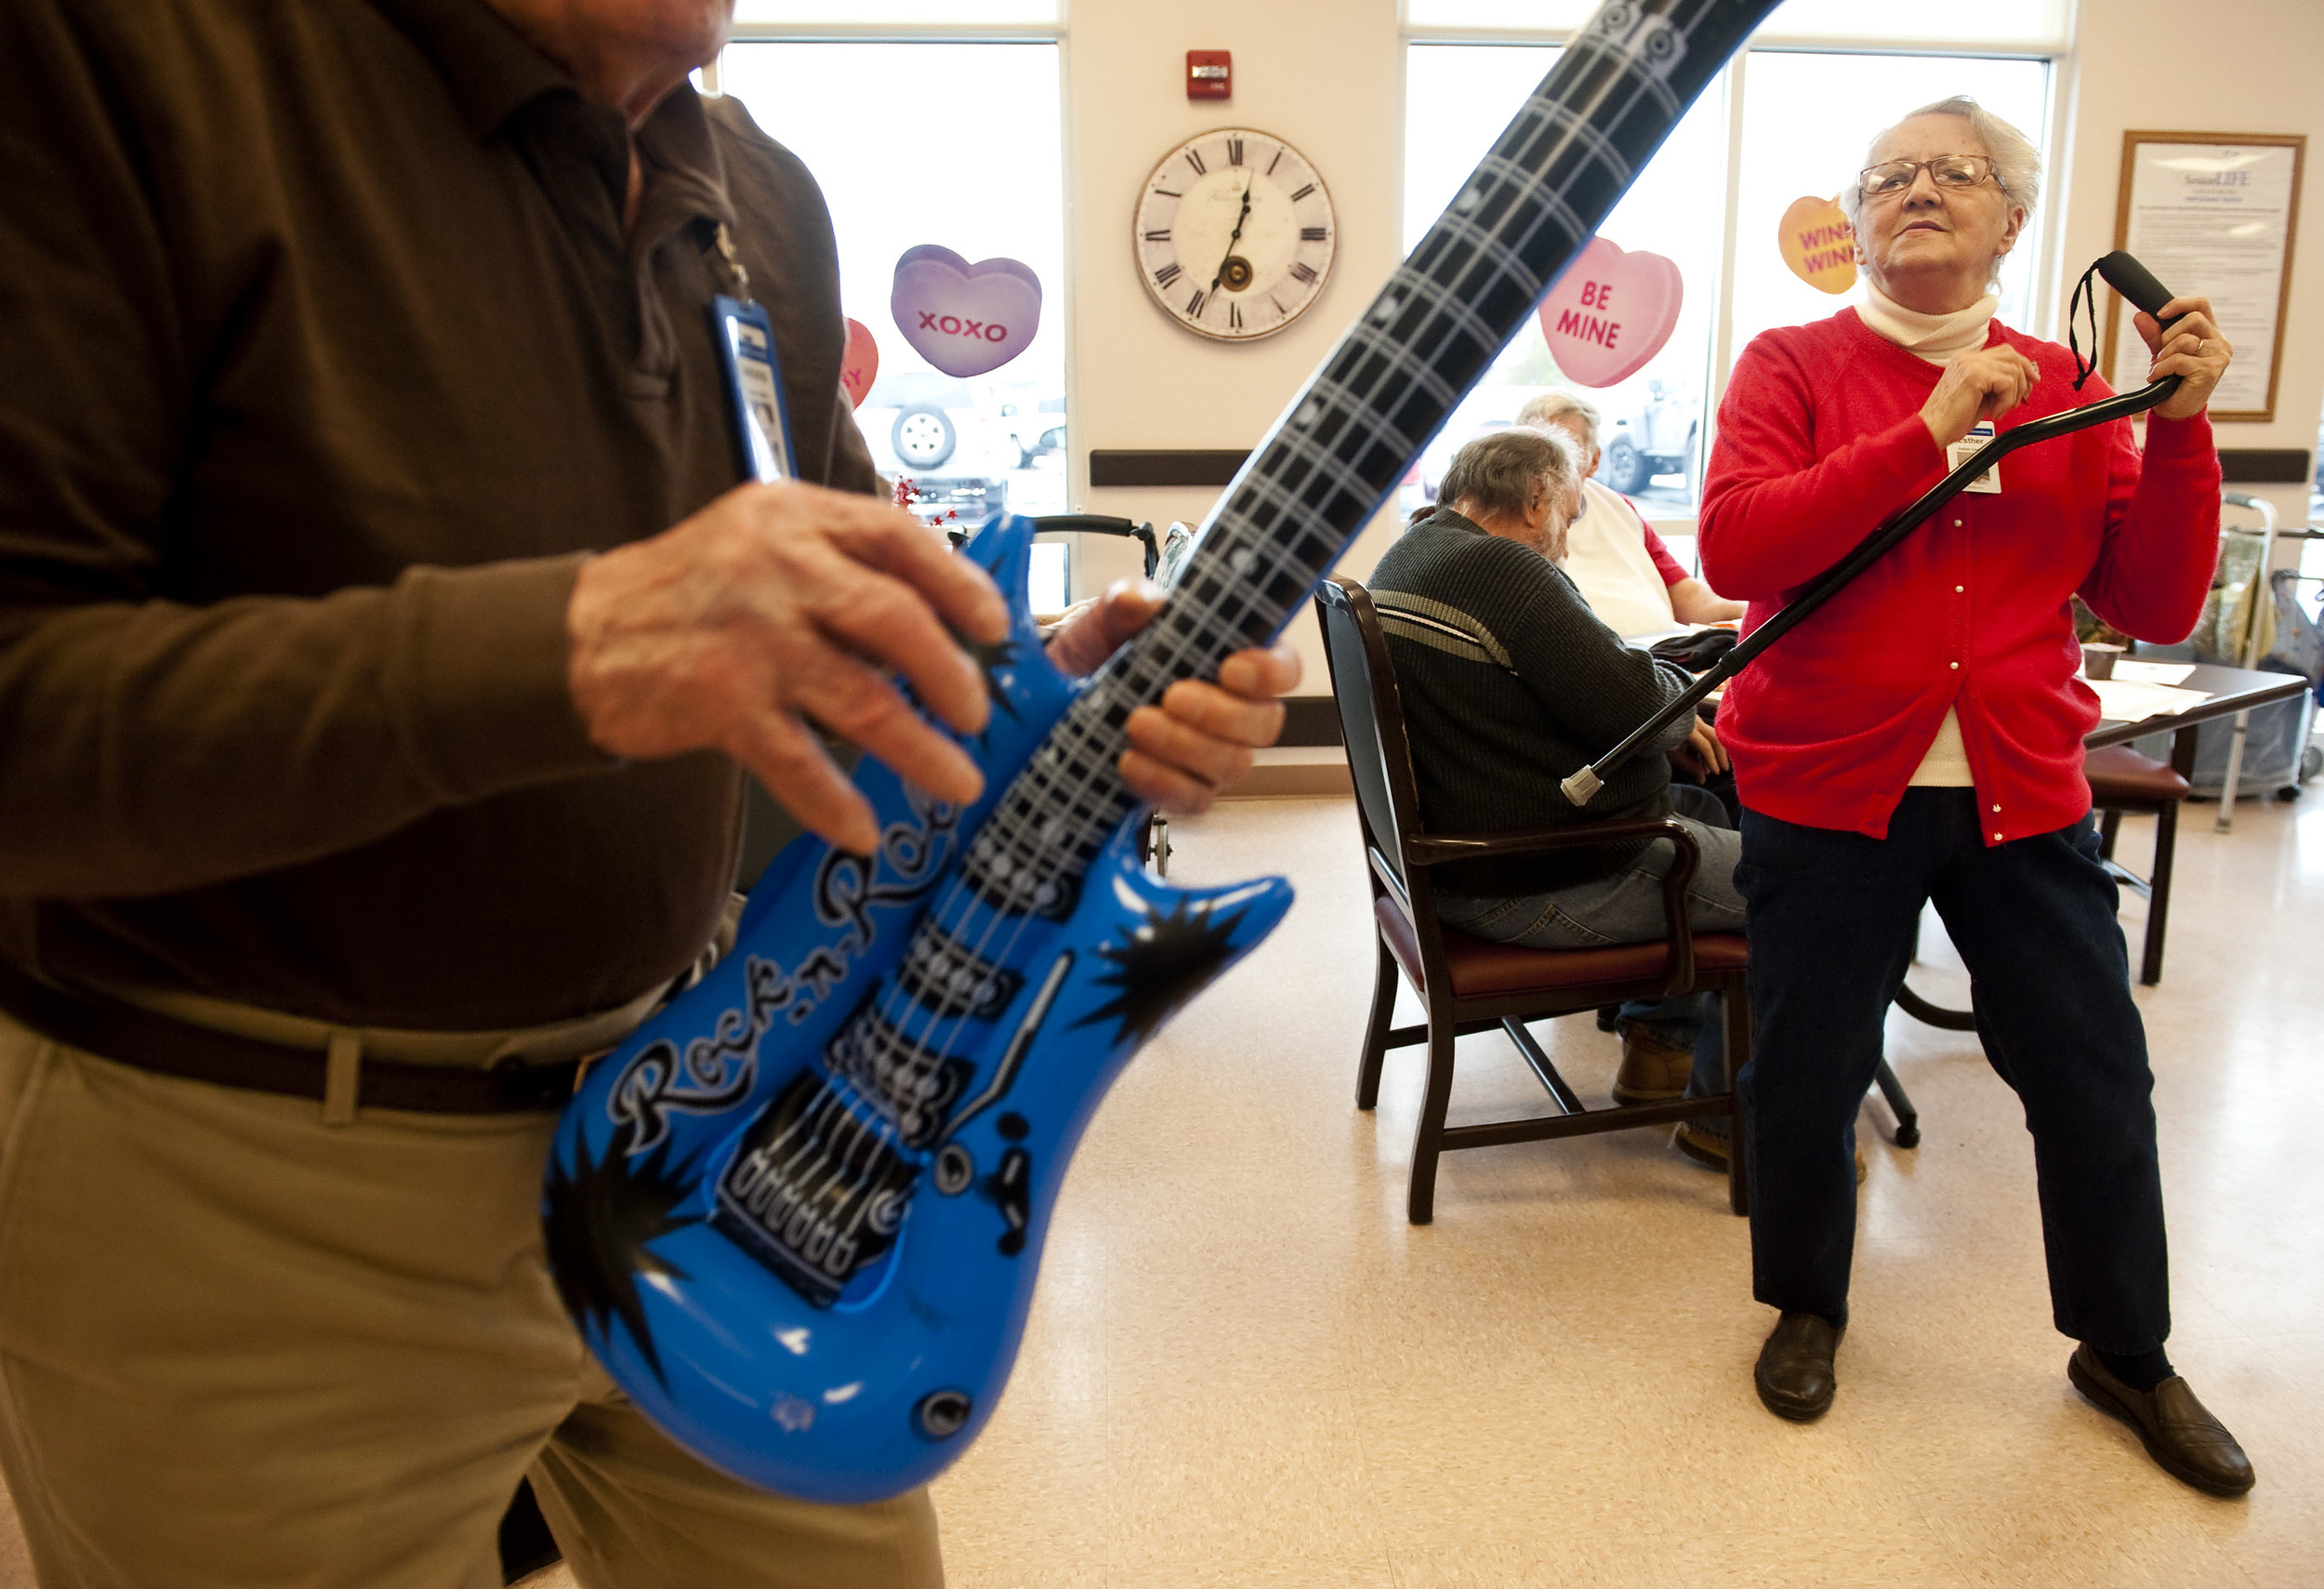 """Esther Czekaj, 75 of Mt. Pleasant, uses her cane as an """"air guitar"""" during a Valentine's dance at Senior LIFE in Greensburg on Monday, Feb. 15, 2016."""